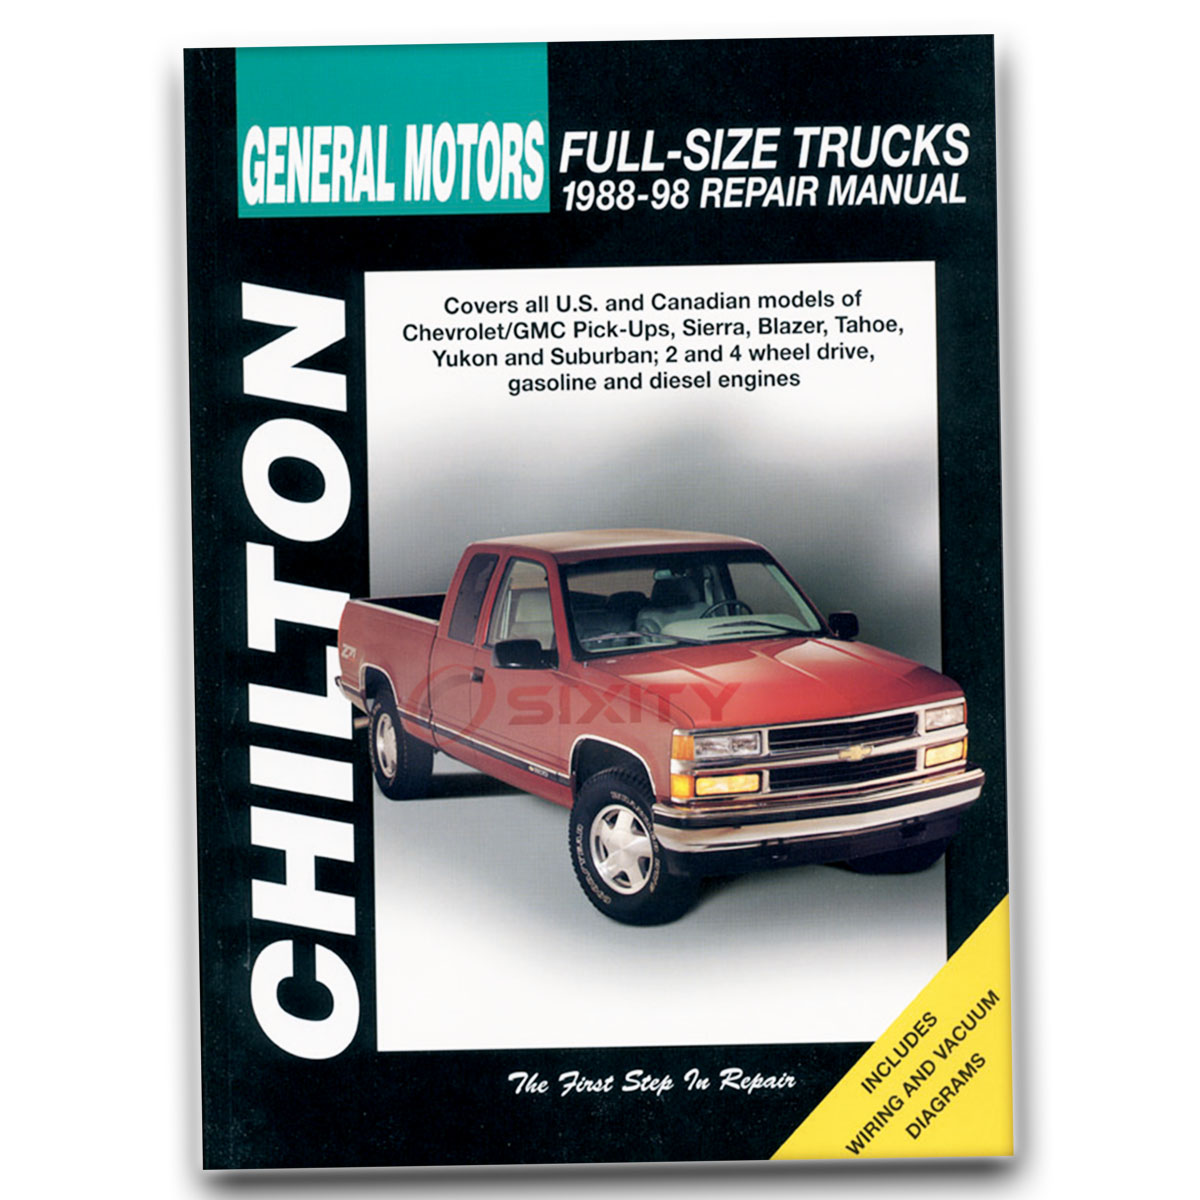 chevy c1500 chilton repair manual base scottsdale silverado wt rh ebay com Car Repair Manual Online Chilton Repair Manuals PDF